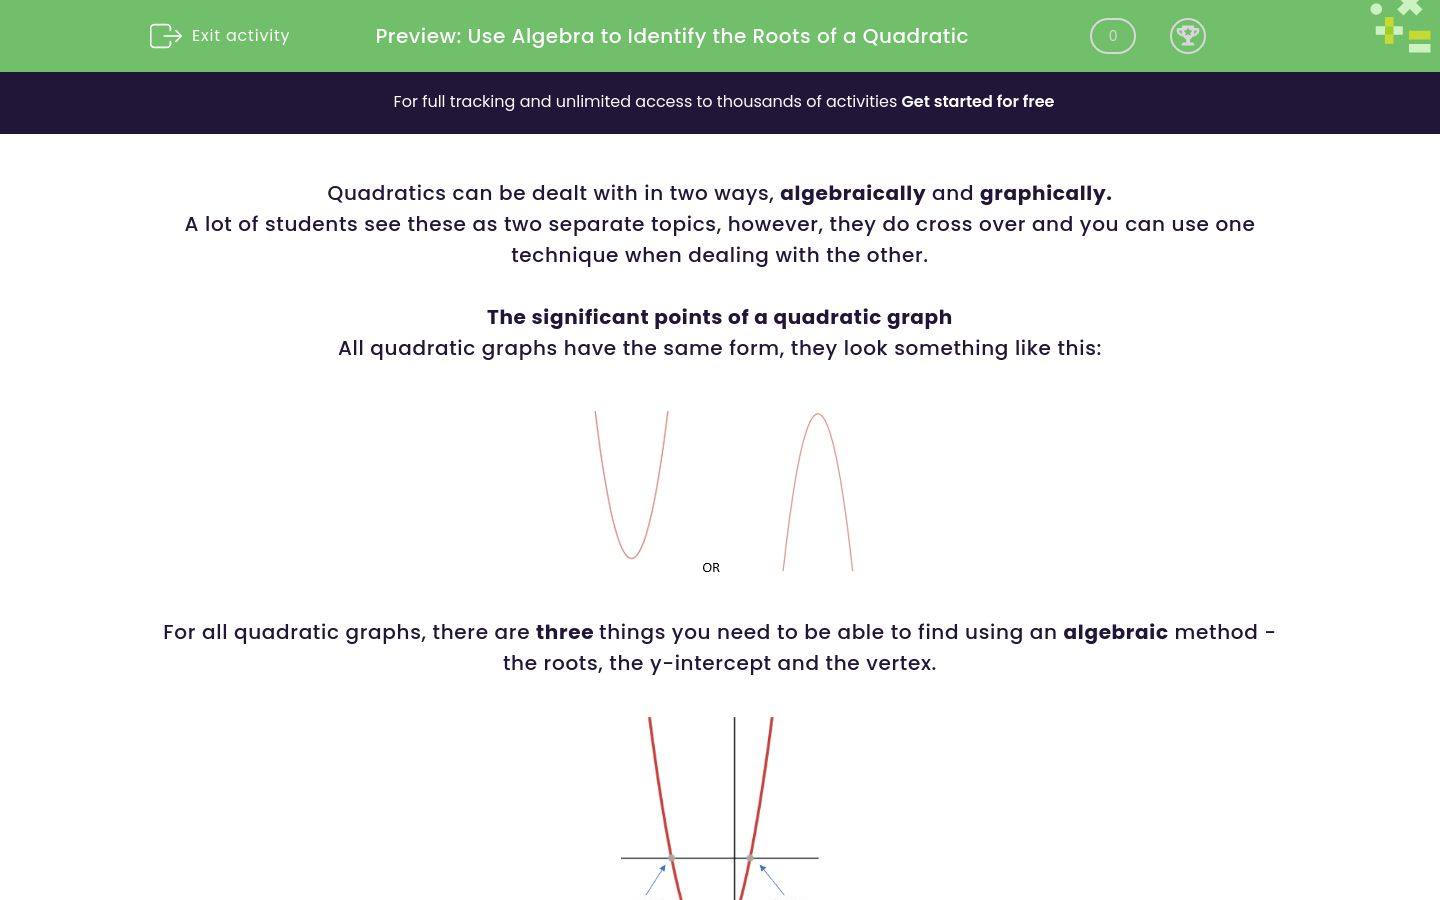 'Use Algebra to Identify the Roots of a Quadratic' worksheet